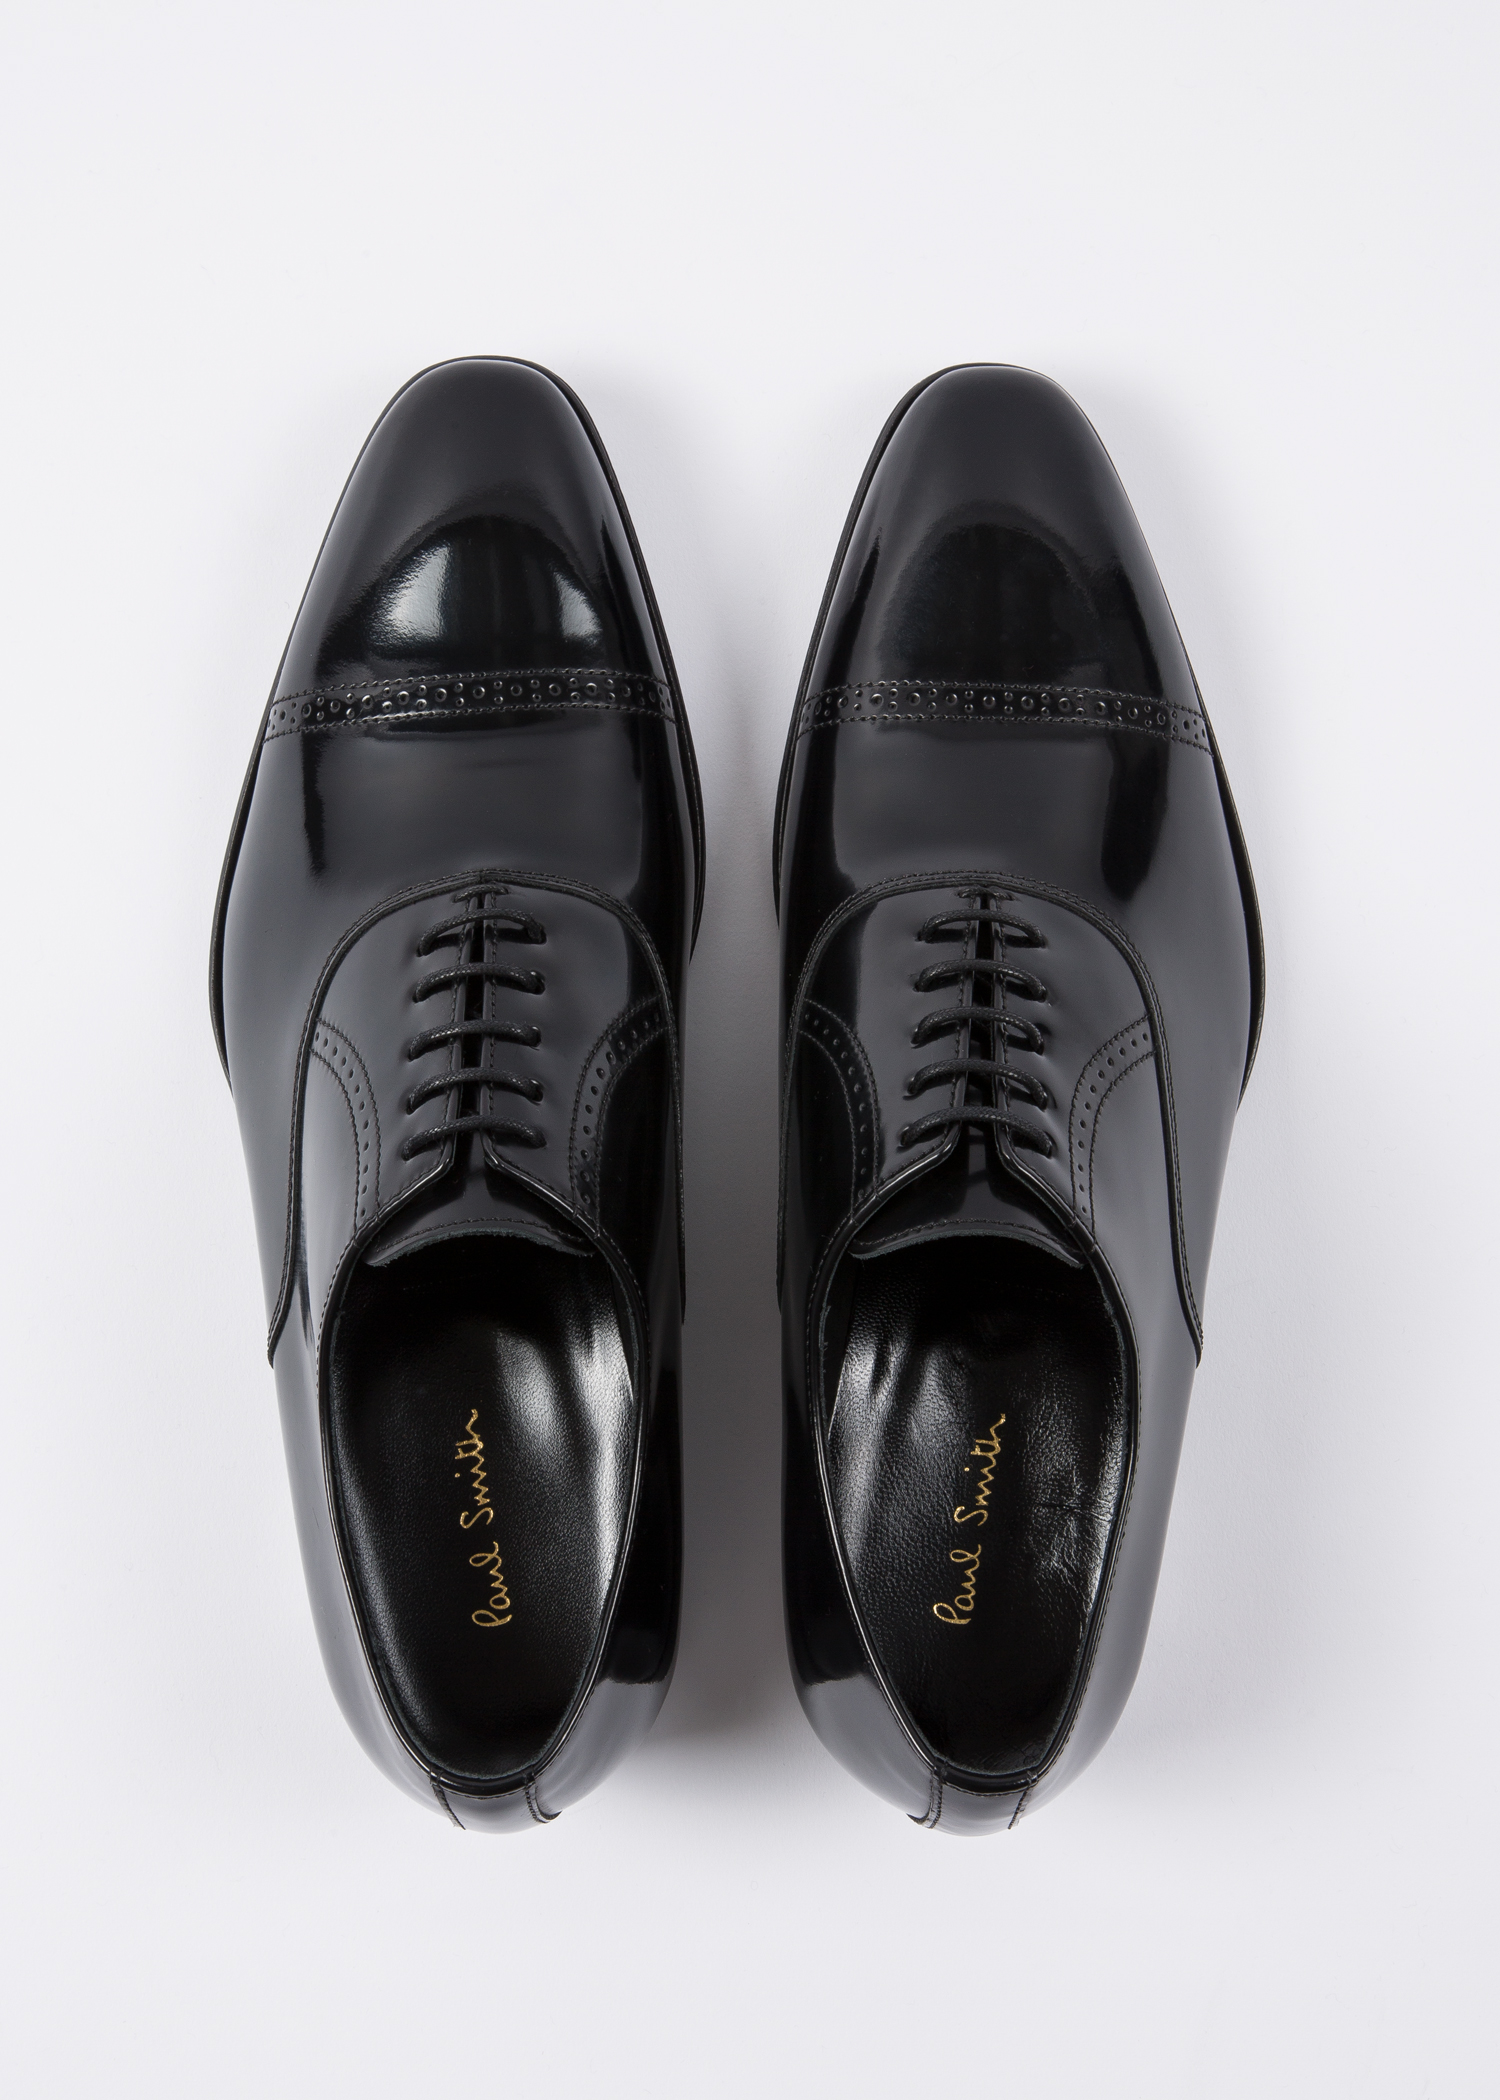 507c3919d6 Men s Black Patent Leather  Lord  Oxford Shoes - Paul Smith Asia